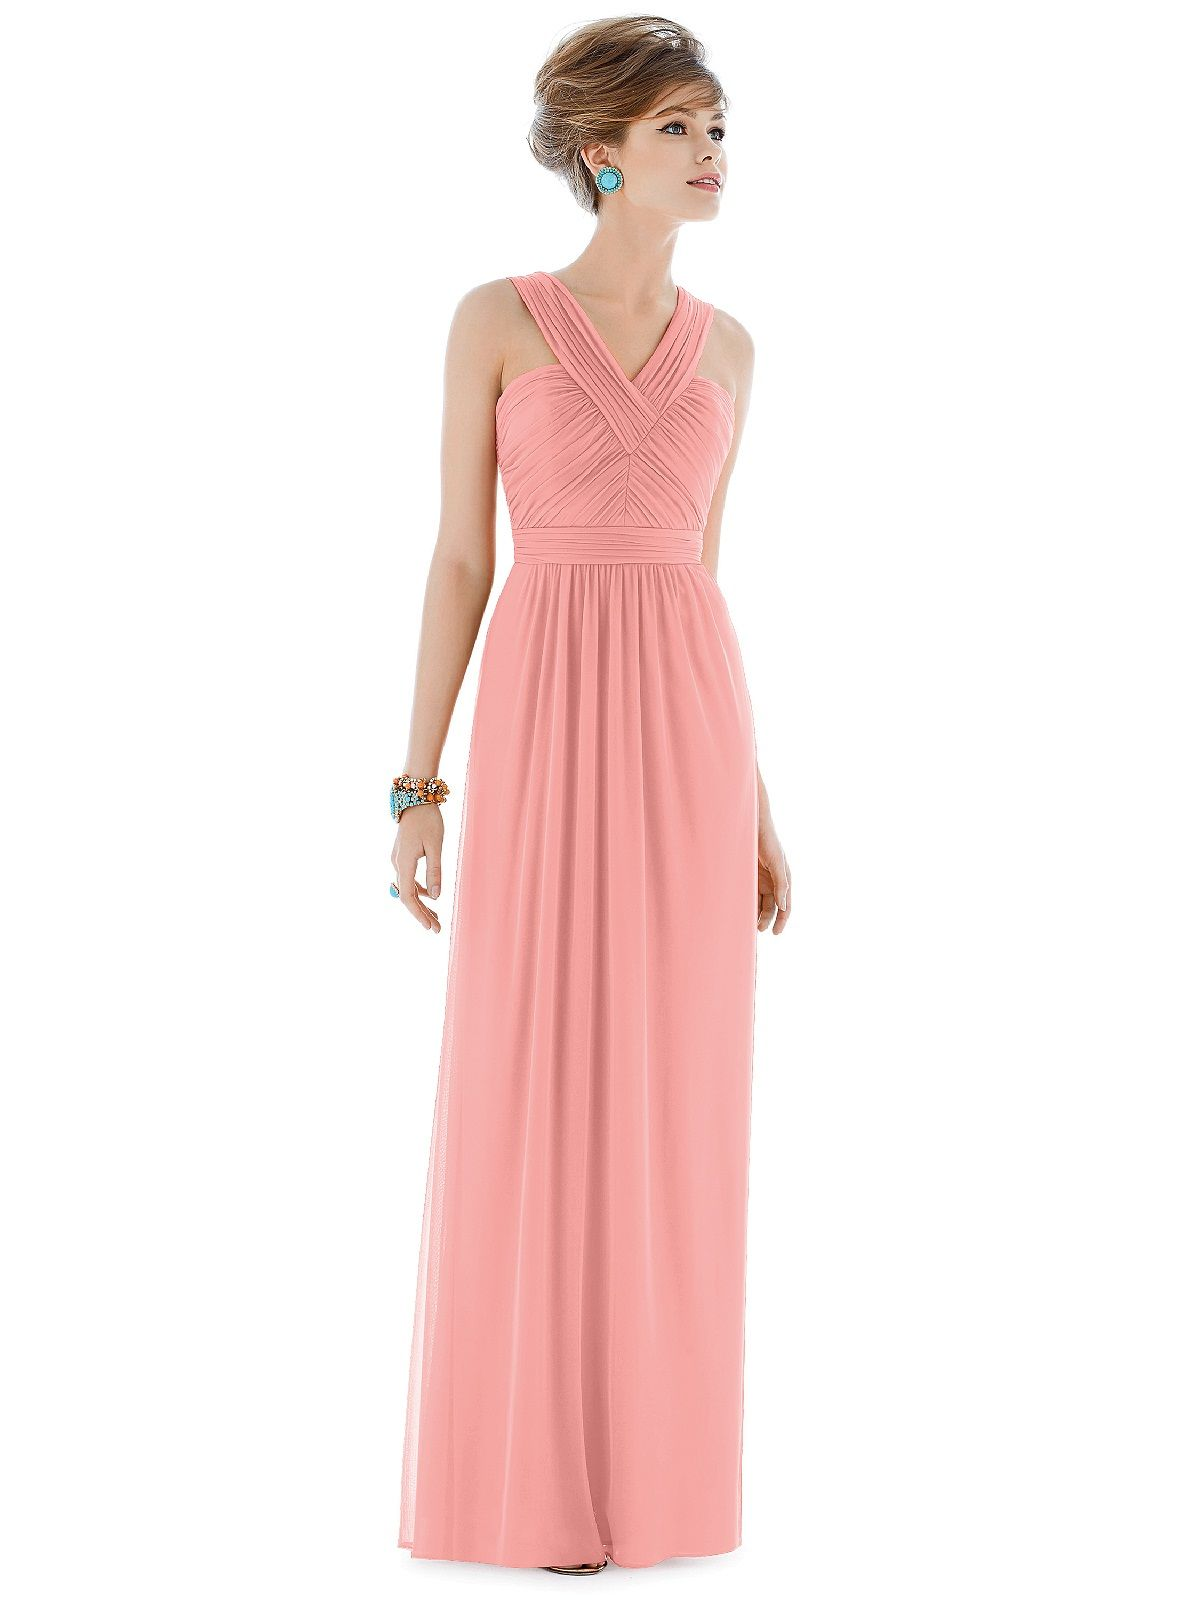 Alfred sung d678 bridesmaid dress in coral in chiffon shop alfred sung final sale sample sale in chiffon knit at weddington way find the perfect made to order bridesmaid dresses for your bridal party in your ombrellifo Gallery